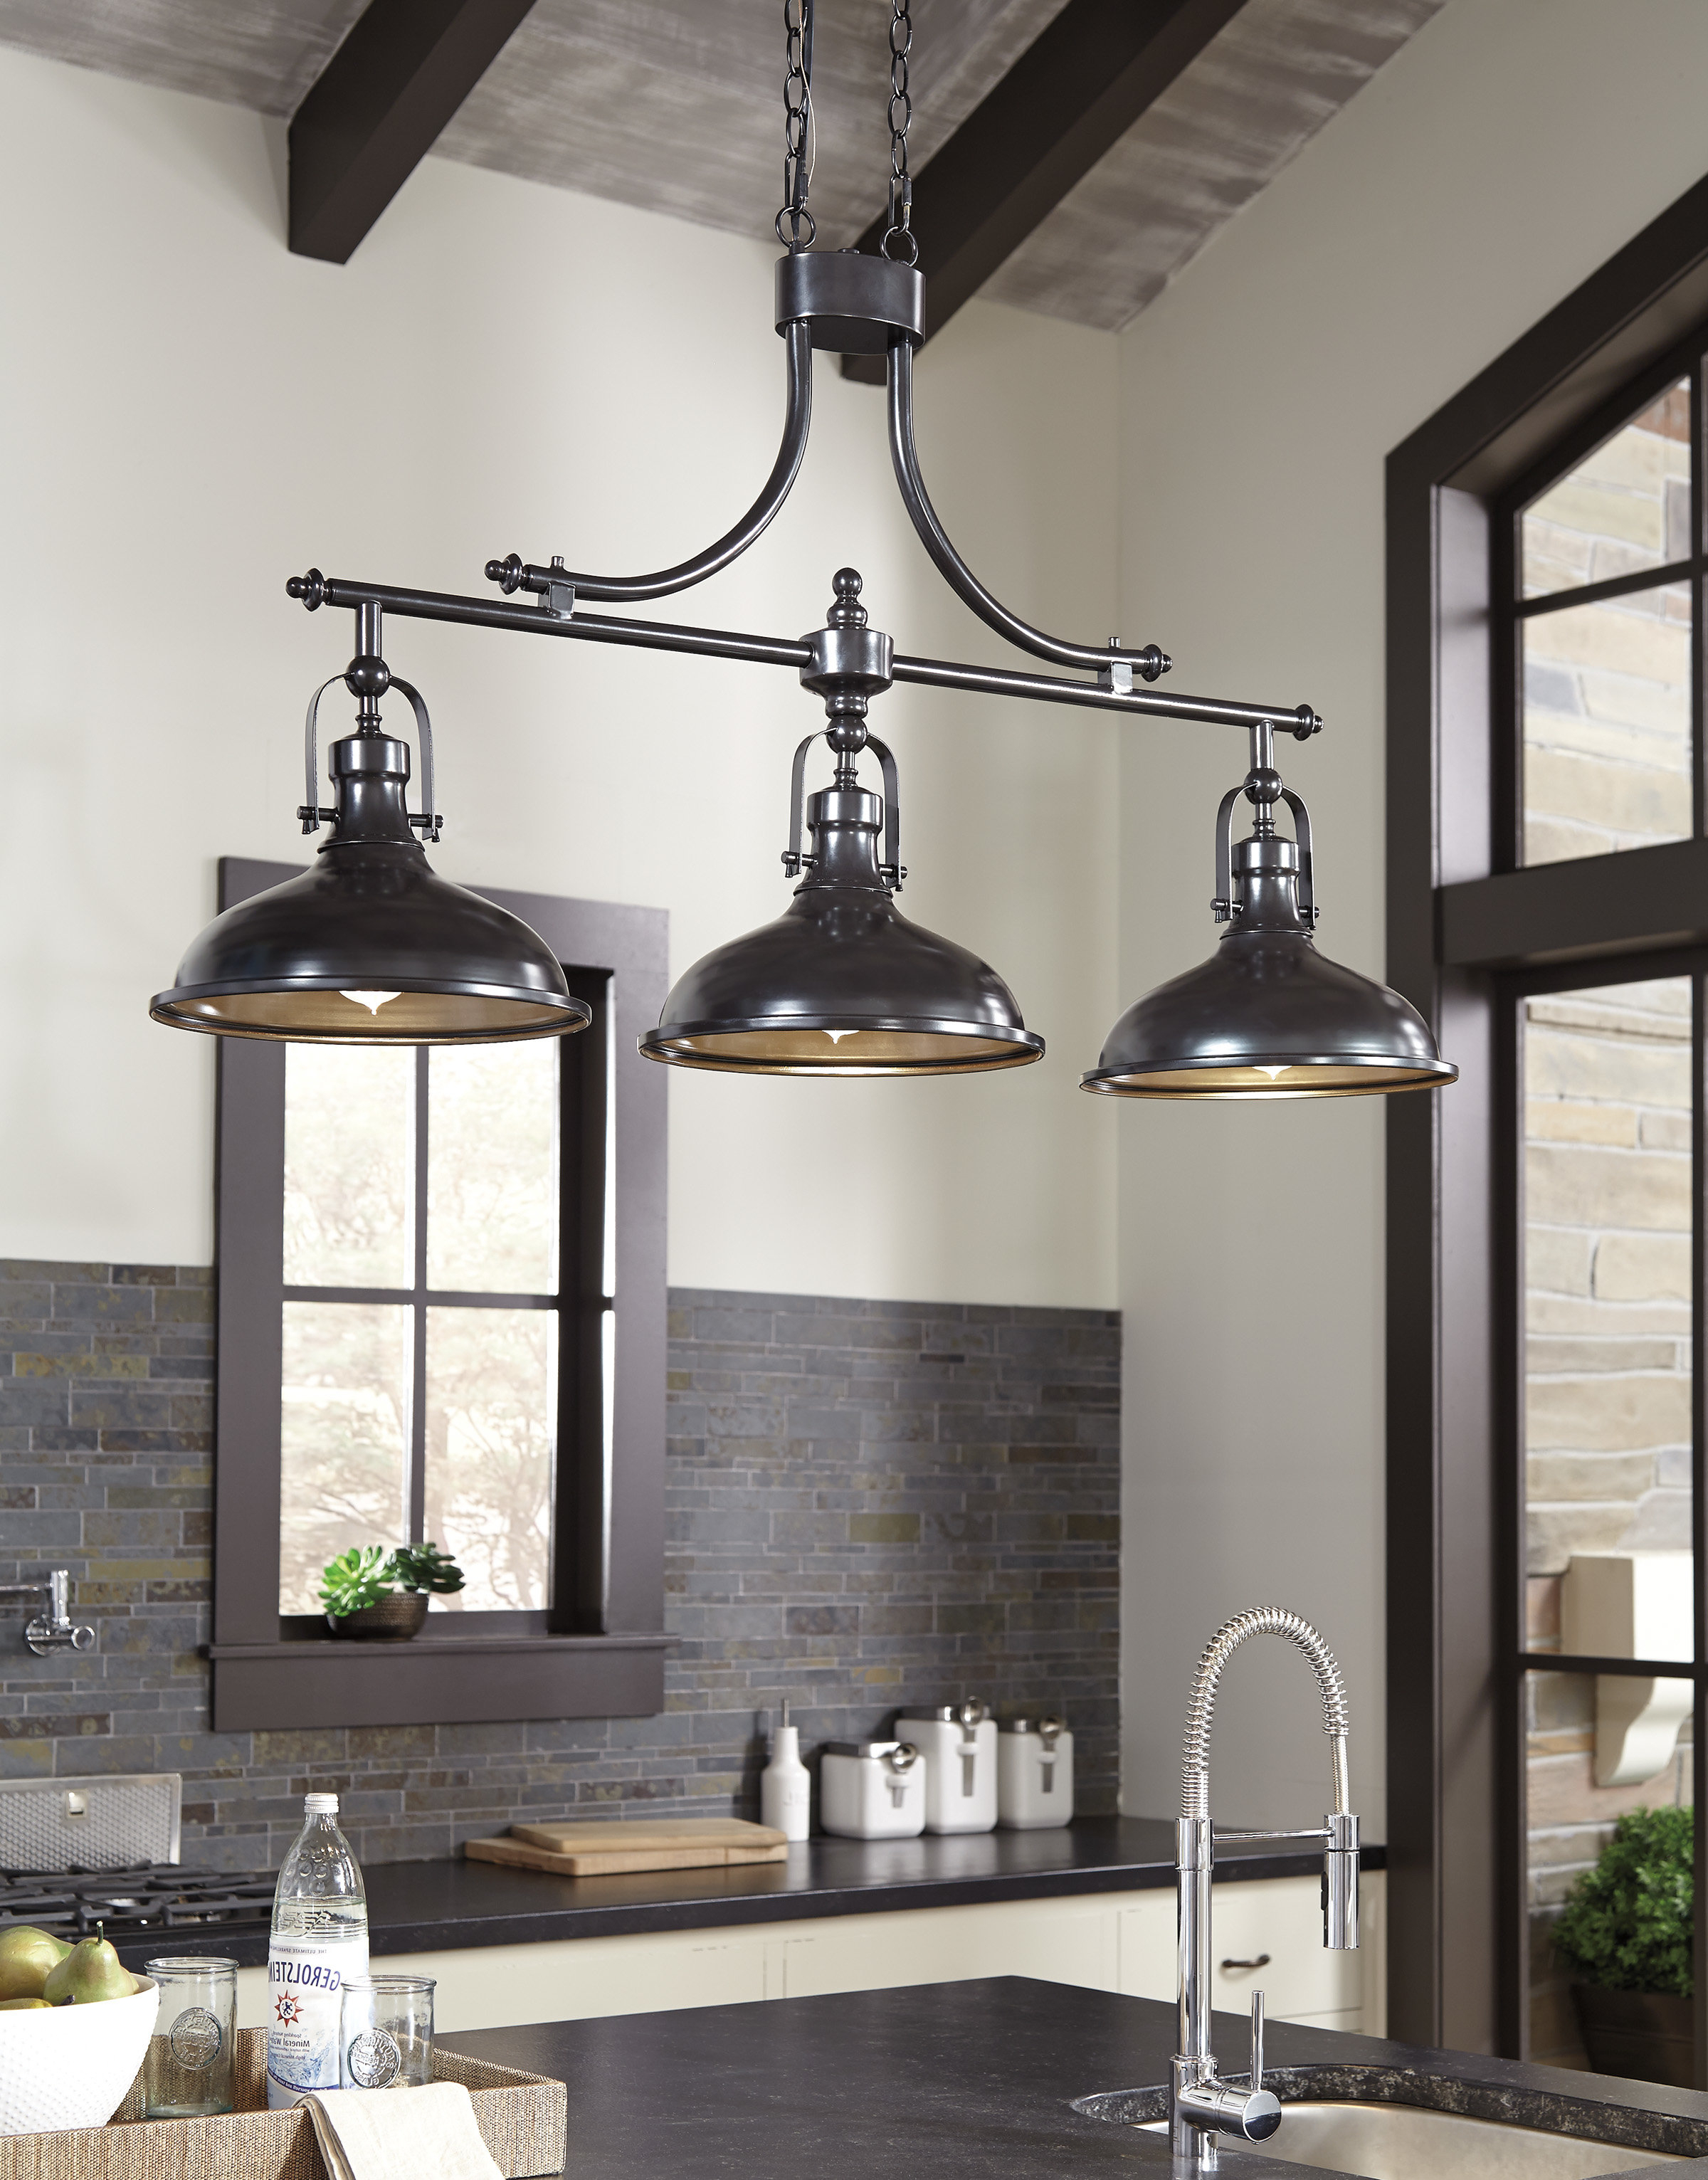 Fashionable Euclid 2 Light Kitchen Island Linear Pendants Pertaining To Martinique 3 Light Kitchen Island Dome Pendant (View 17 of 25)